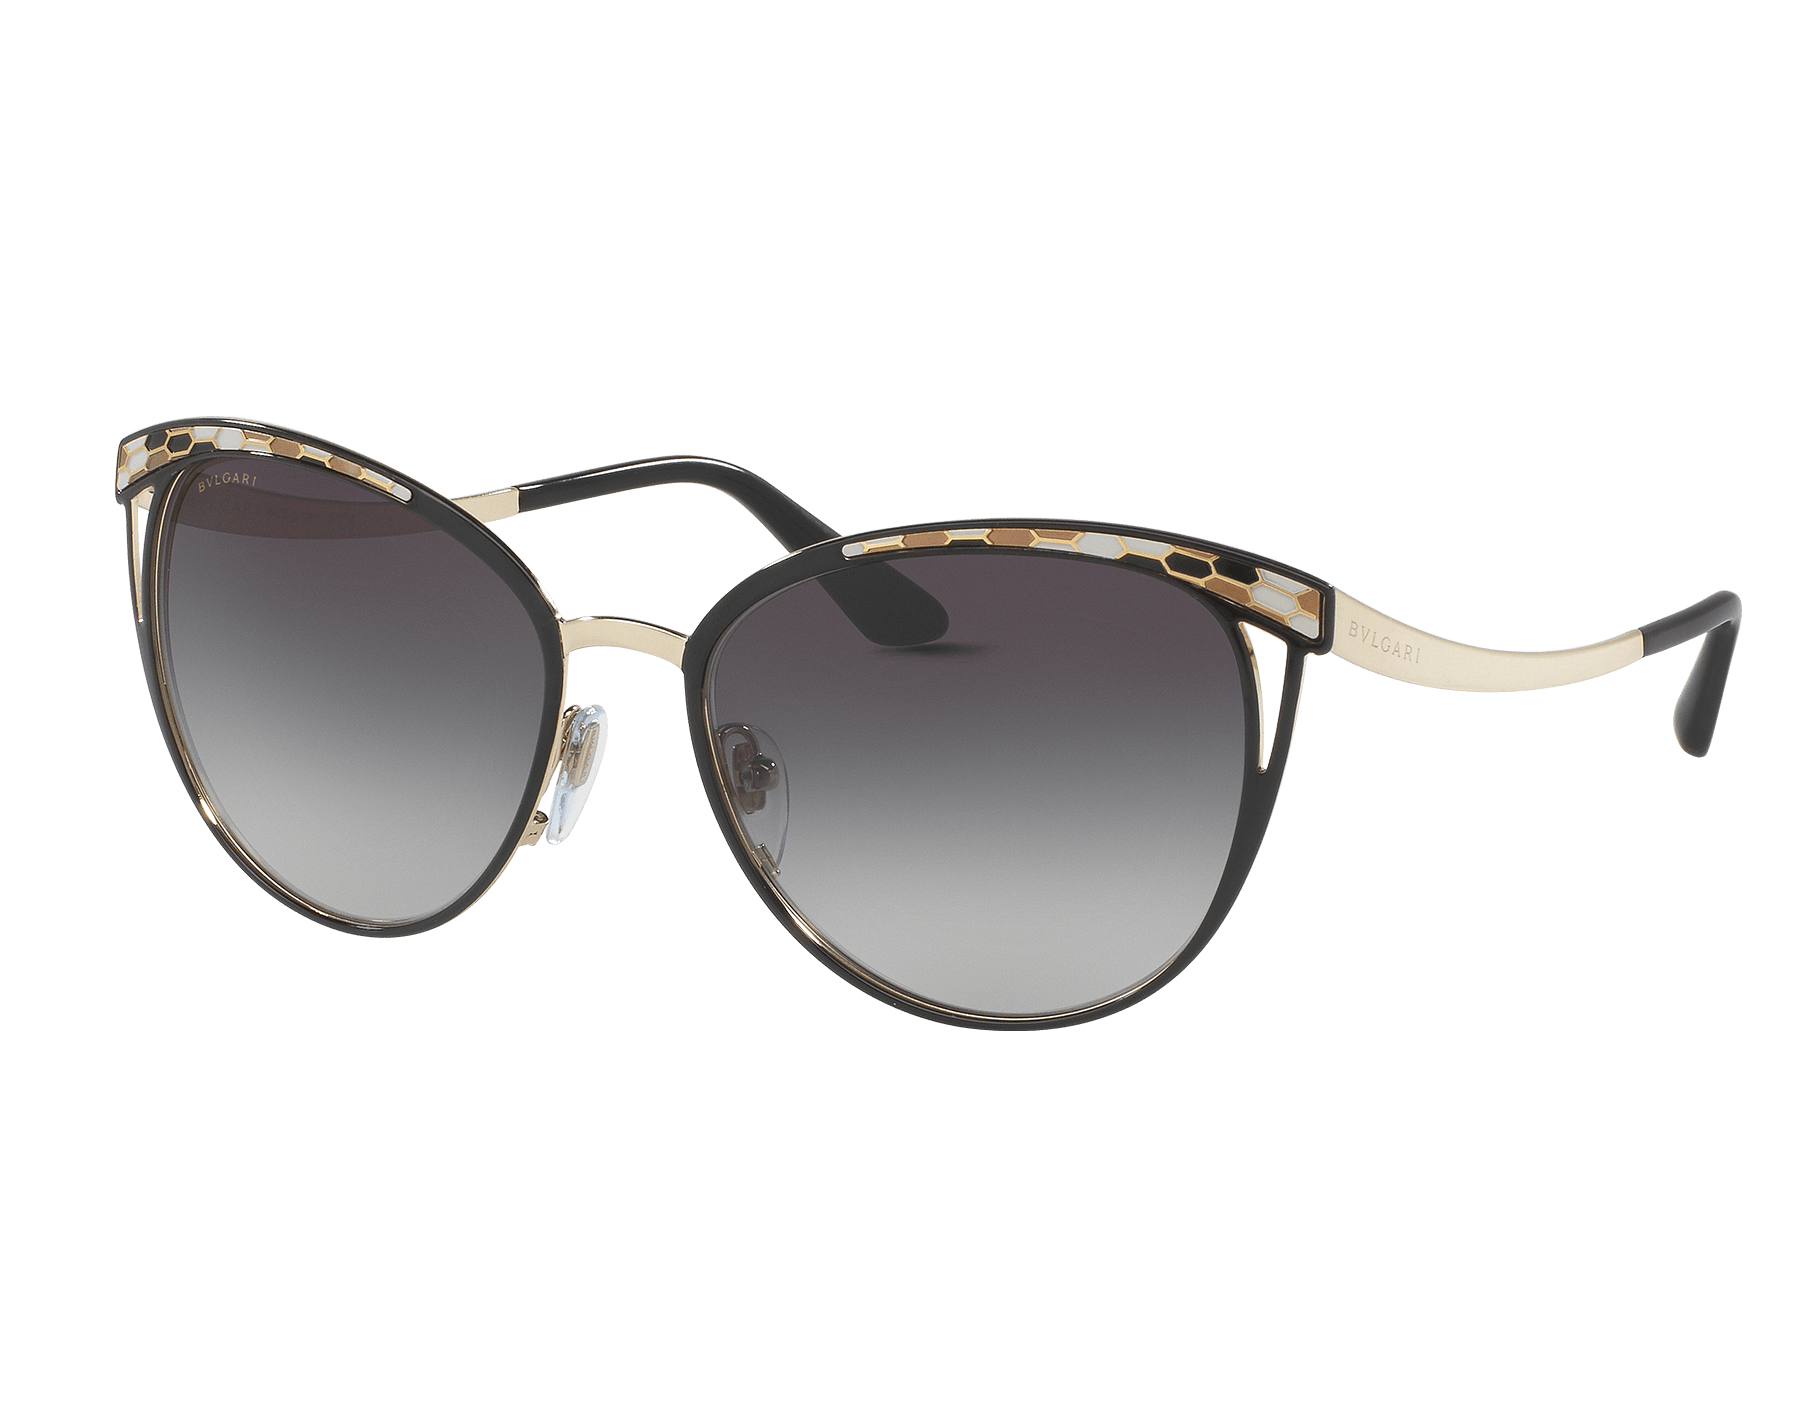 Bulgari Serpenti Serpentine cat-eye metal sunglasses. BV6083 image 1